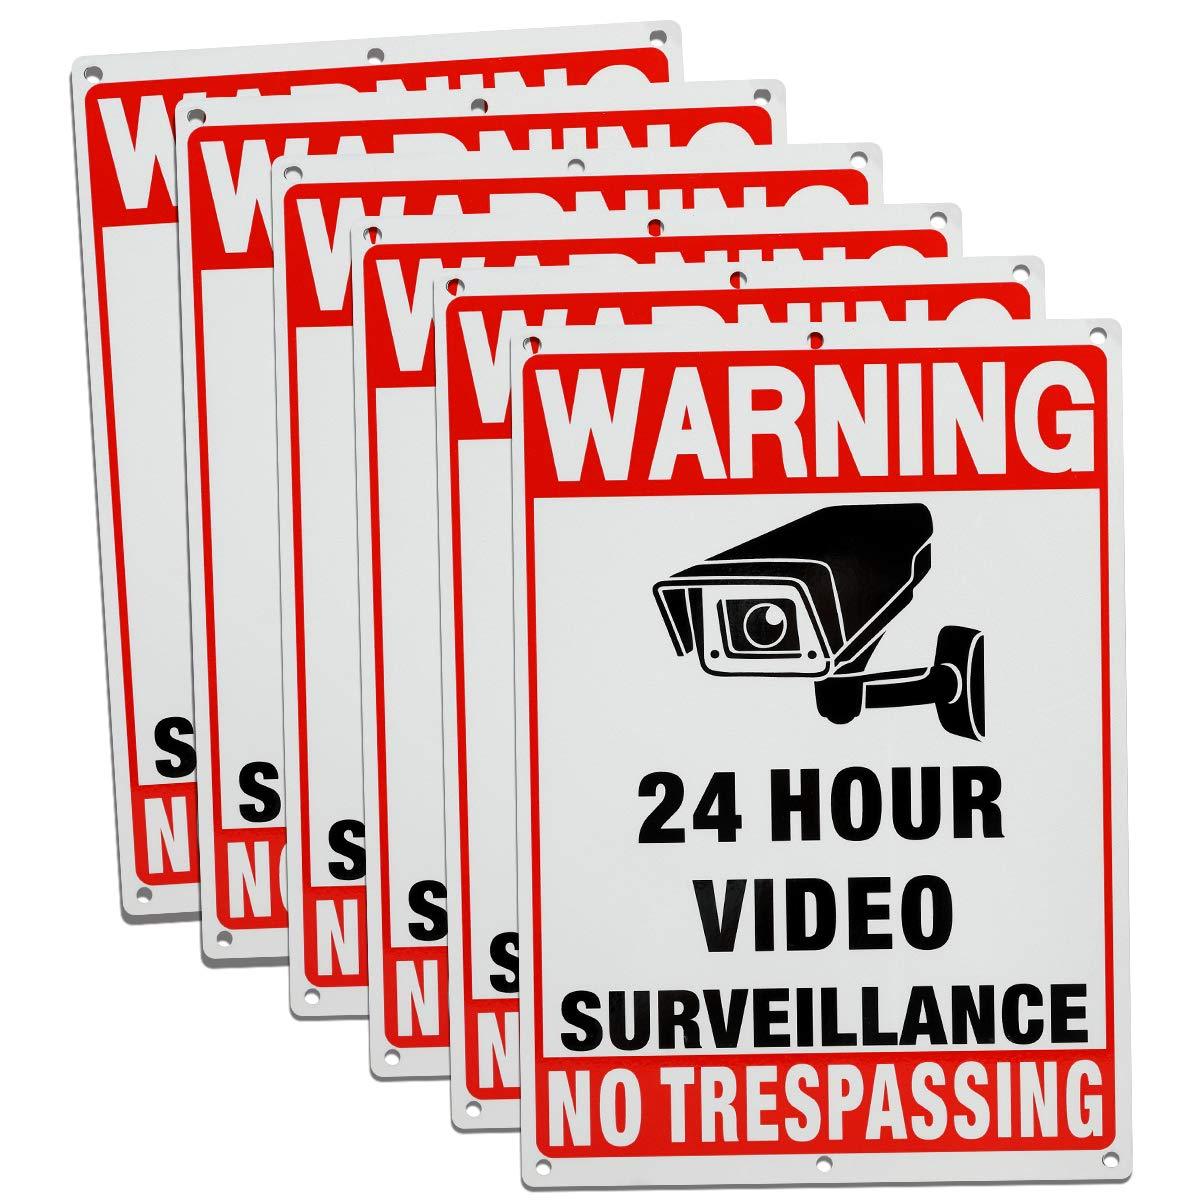 6-Pack Video Surveillance Sign,xing-ruiyang Aluminium Reflective No Trespassing Private Property Warning Sign, Easy to Mount, UV Printed & Weather Resistant for Home Business CCTV Security Camera